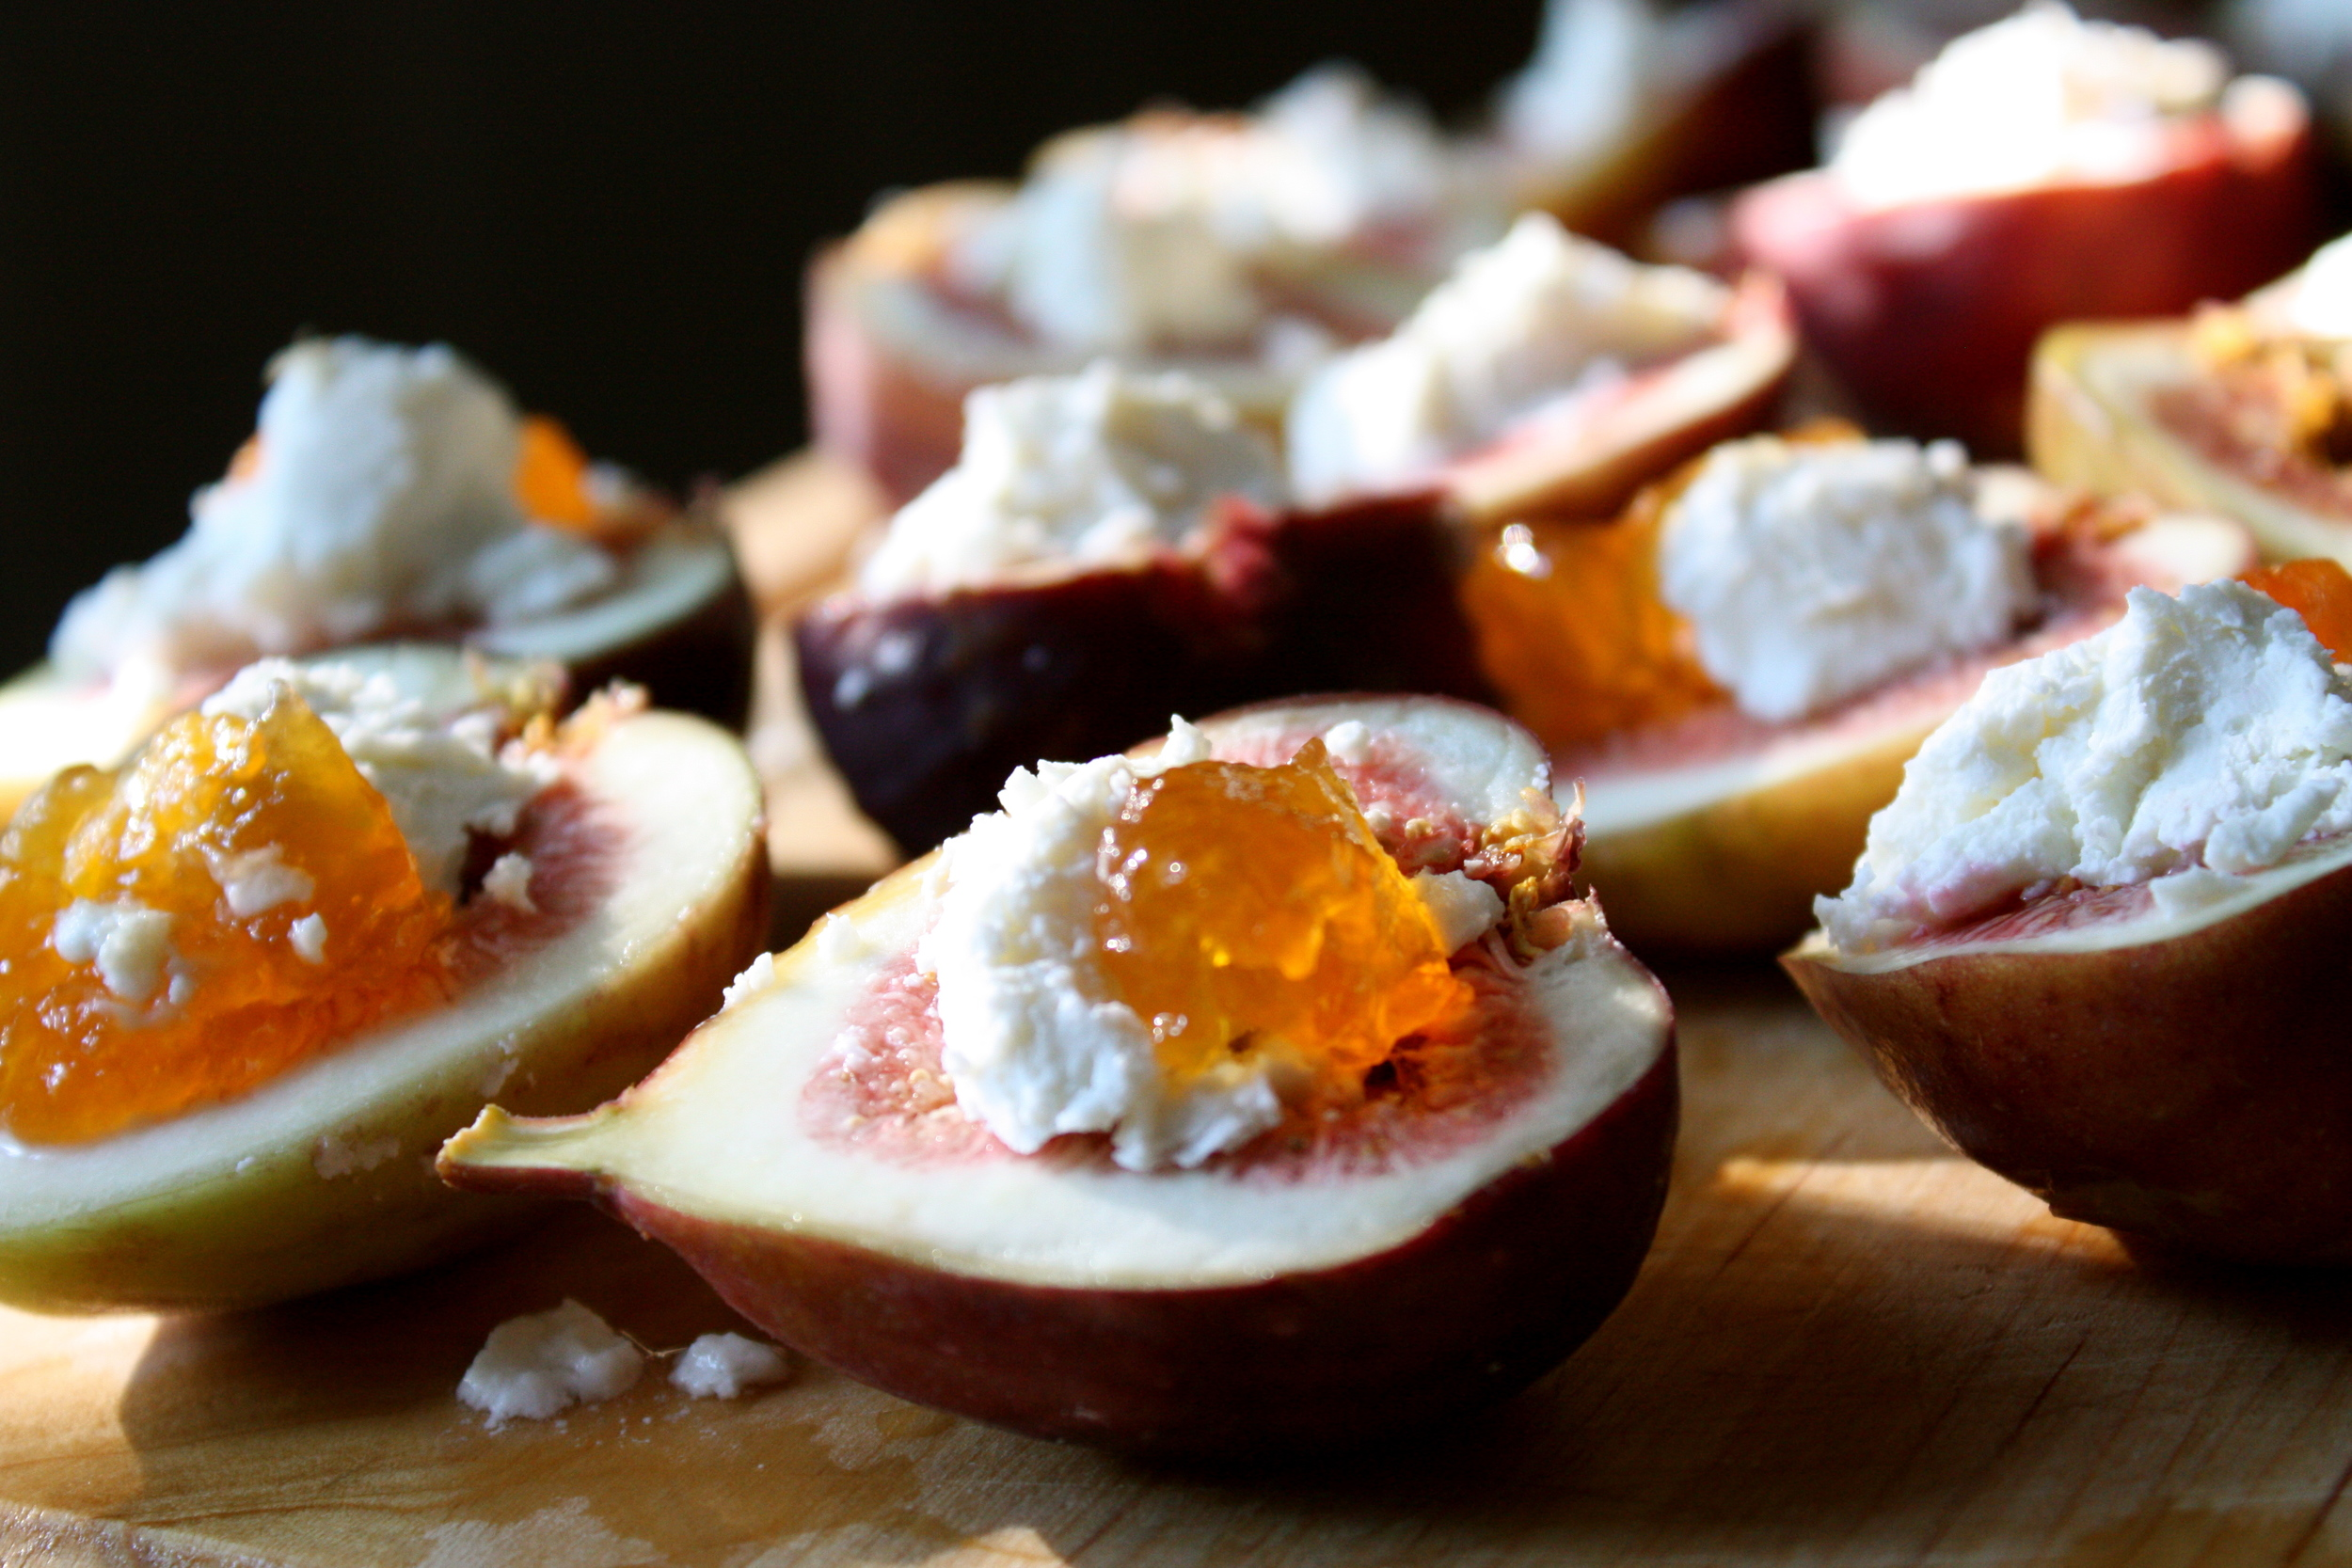 Figs with goat cheese